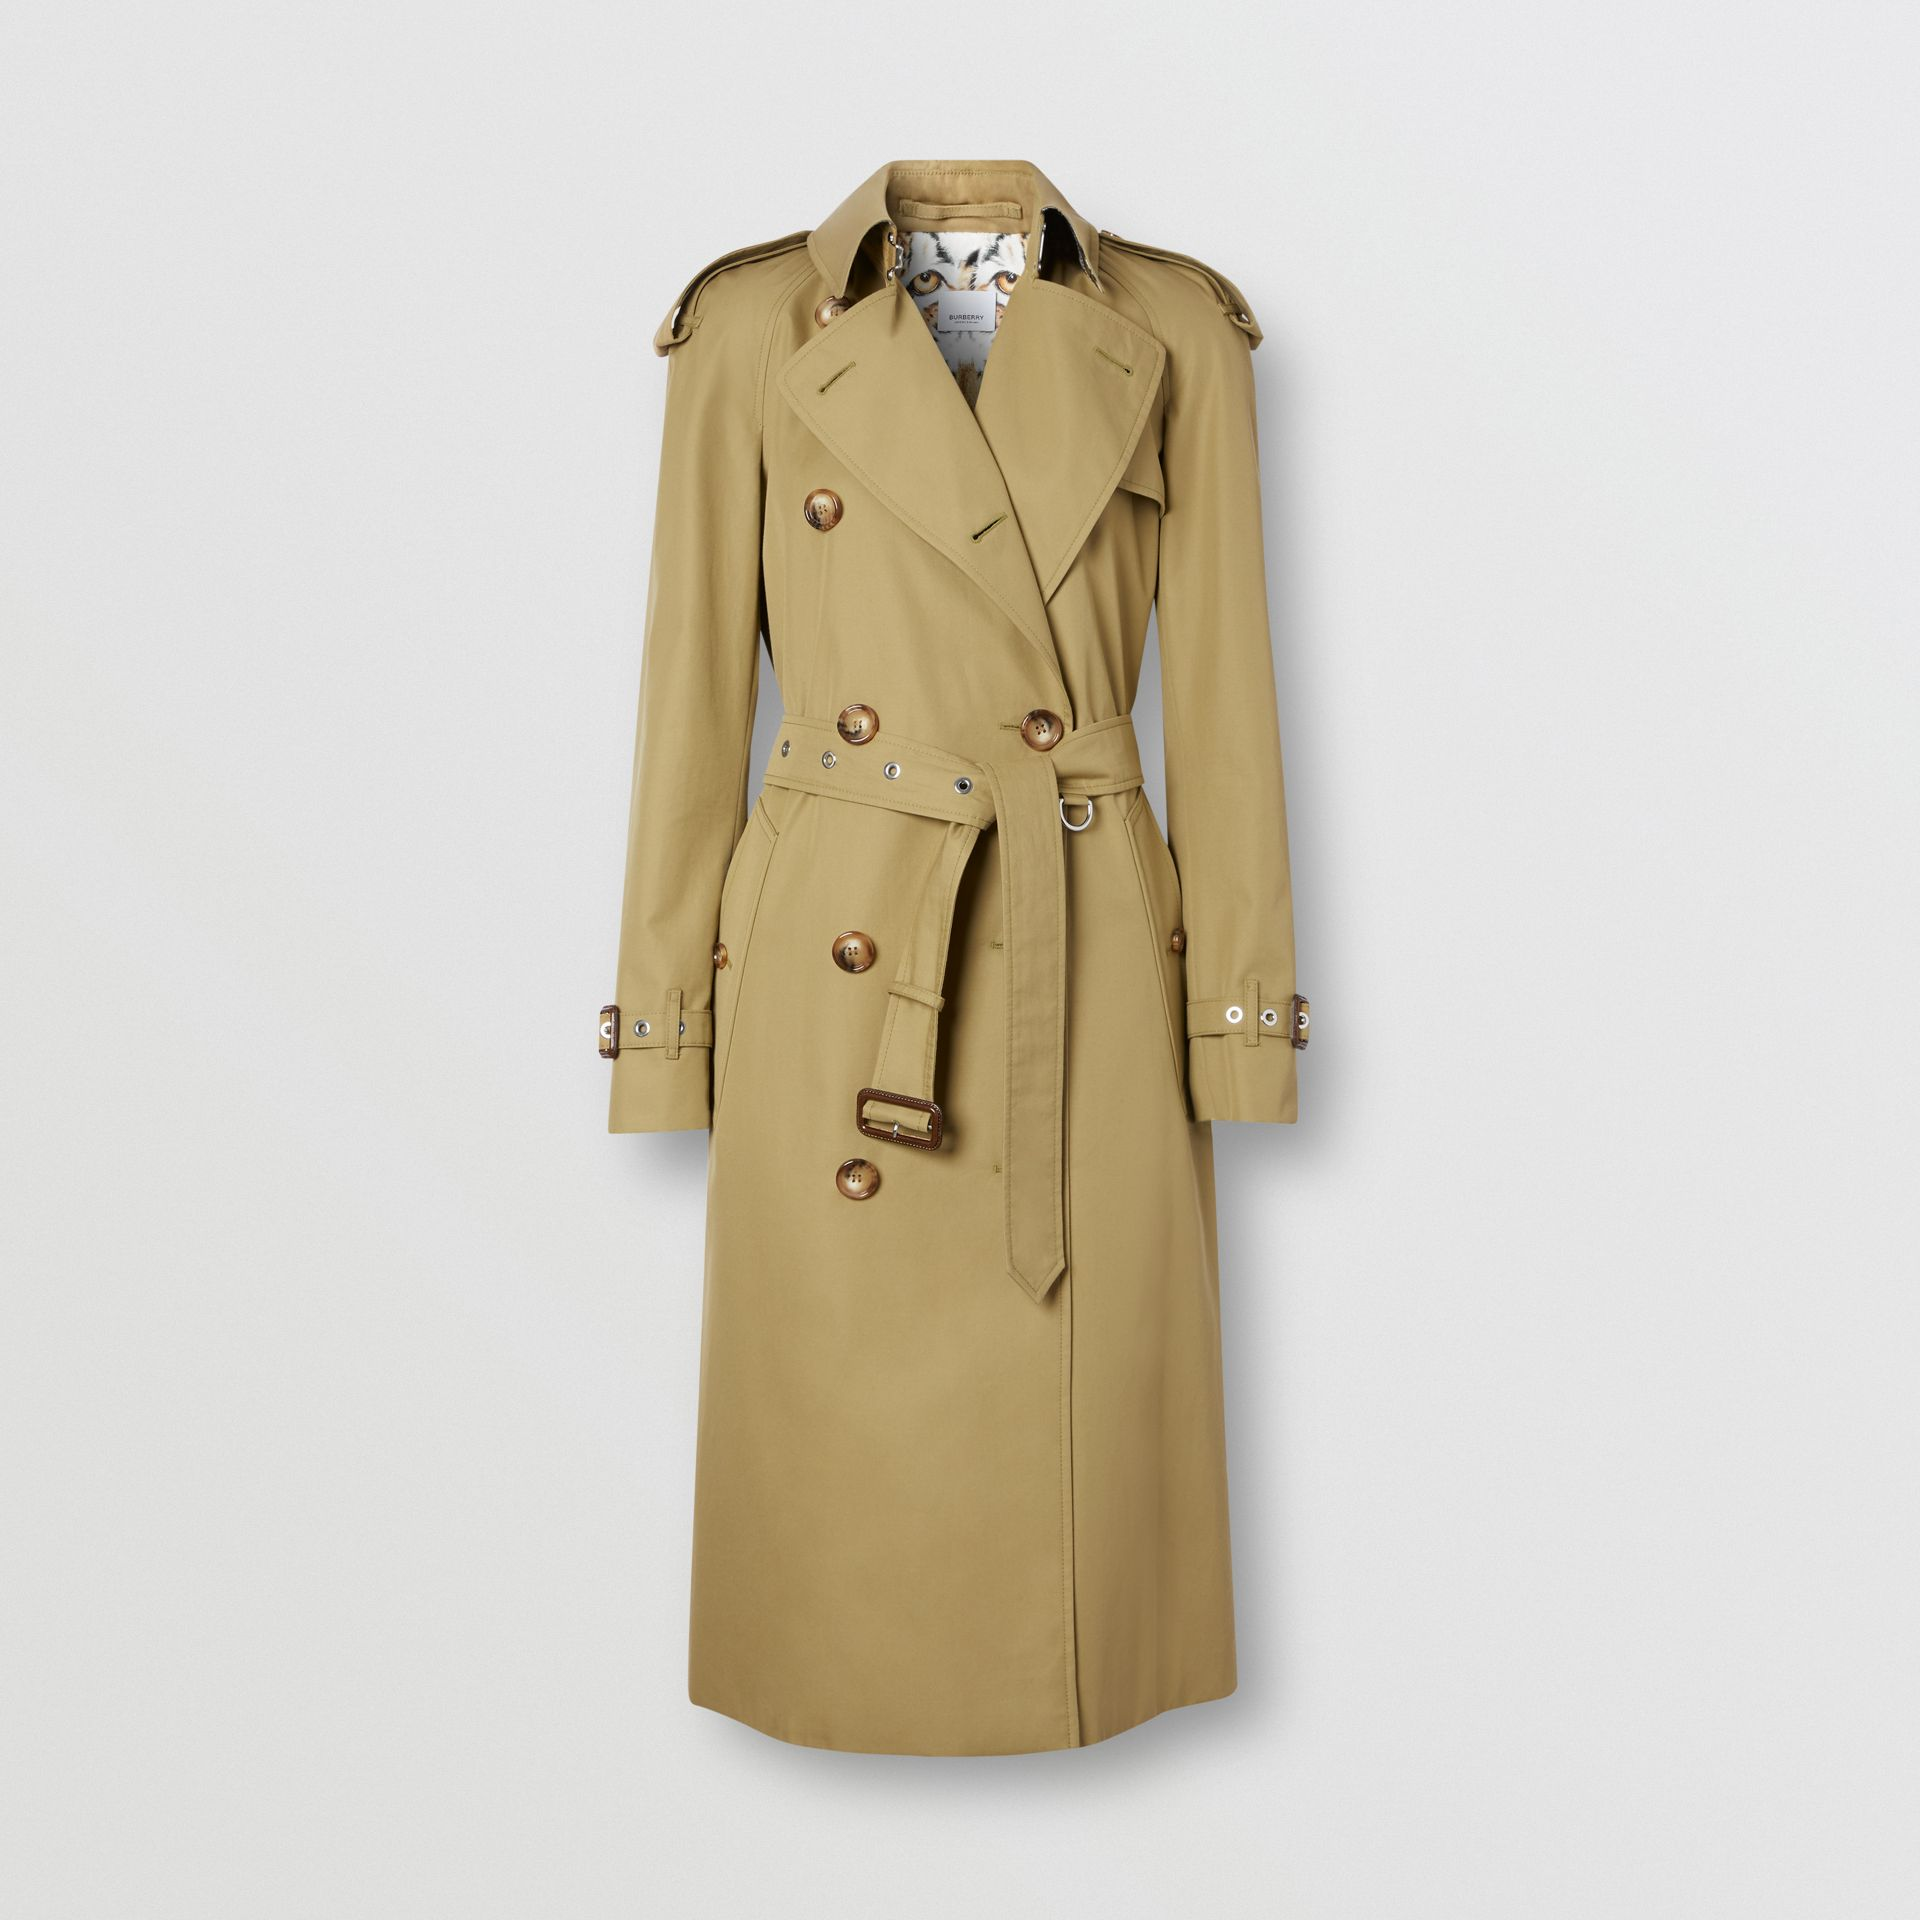 Animalia Print-lined Cotton Gabardine Trench Coat in Rich Olive - Women | Burberry - gallery image 3